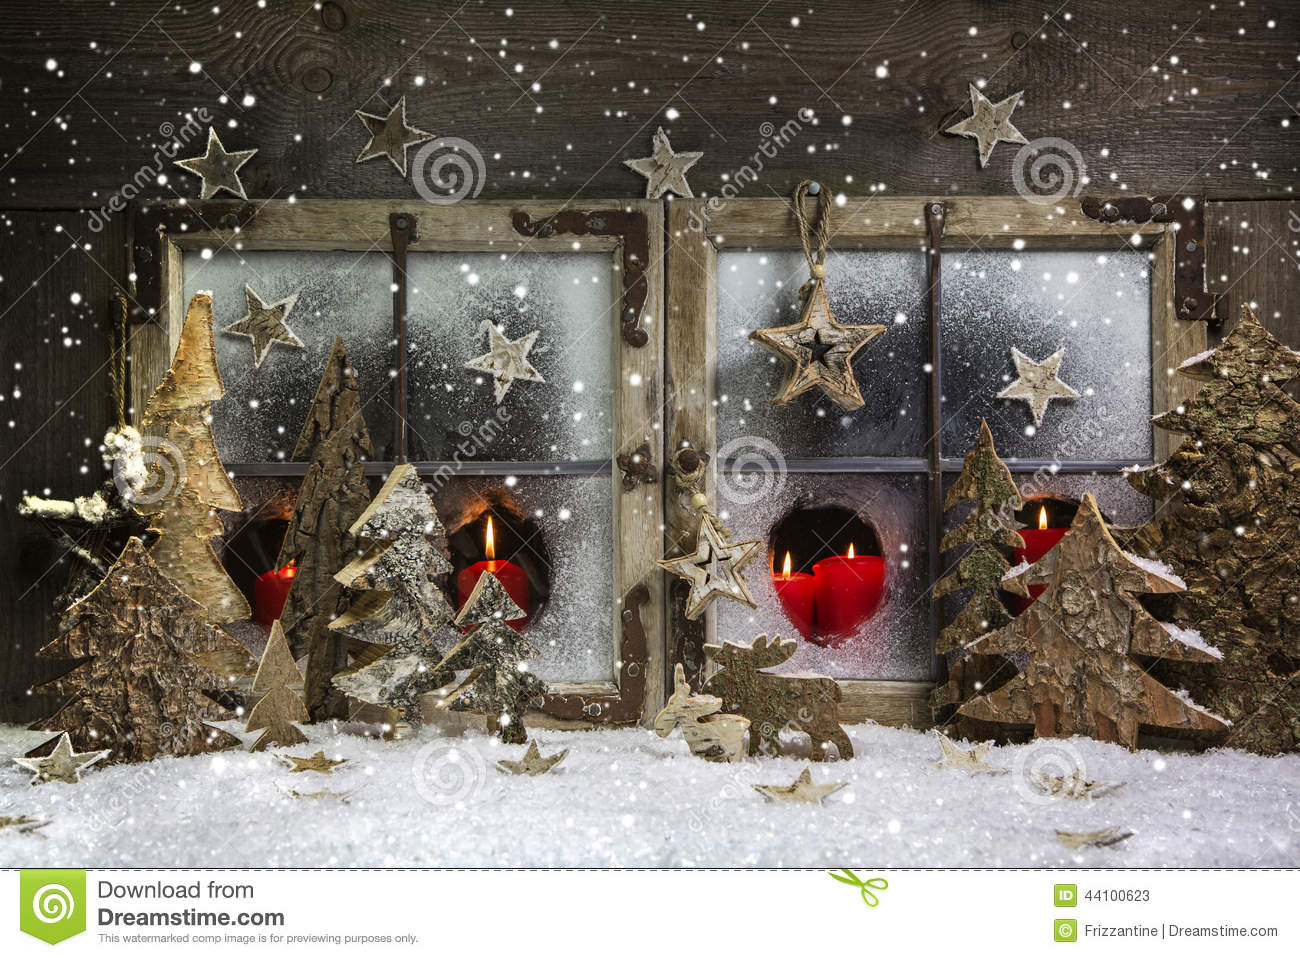 Humeur et atmosph re la d coration de fen tre de no l en for Decoration fenetre noel pinterest